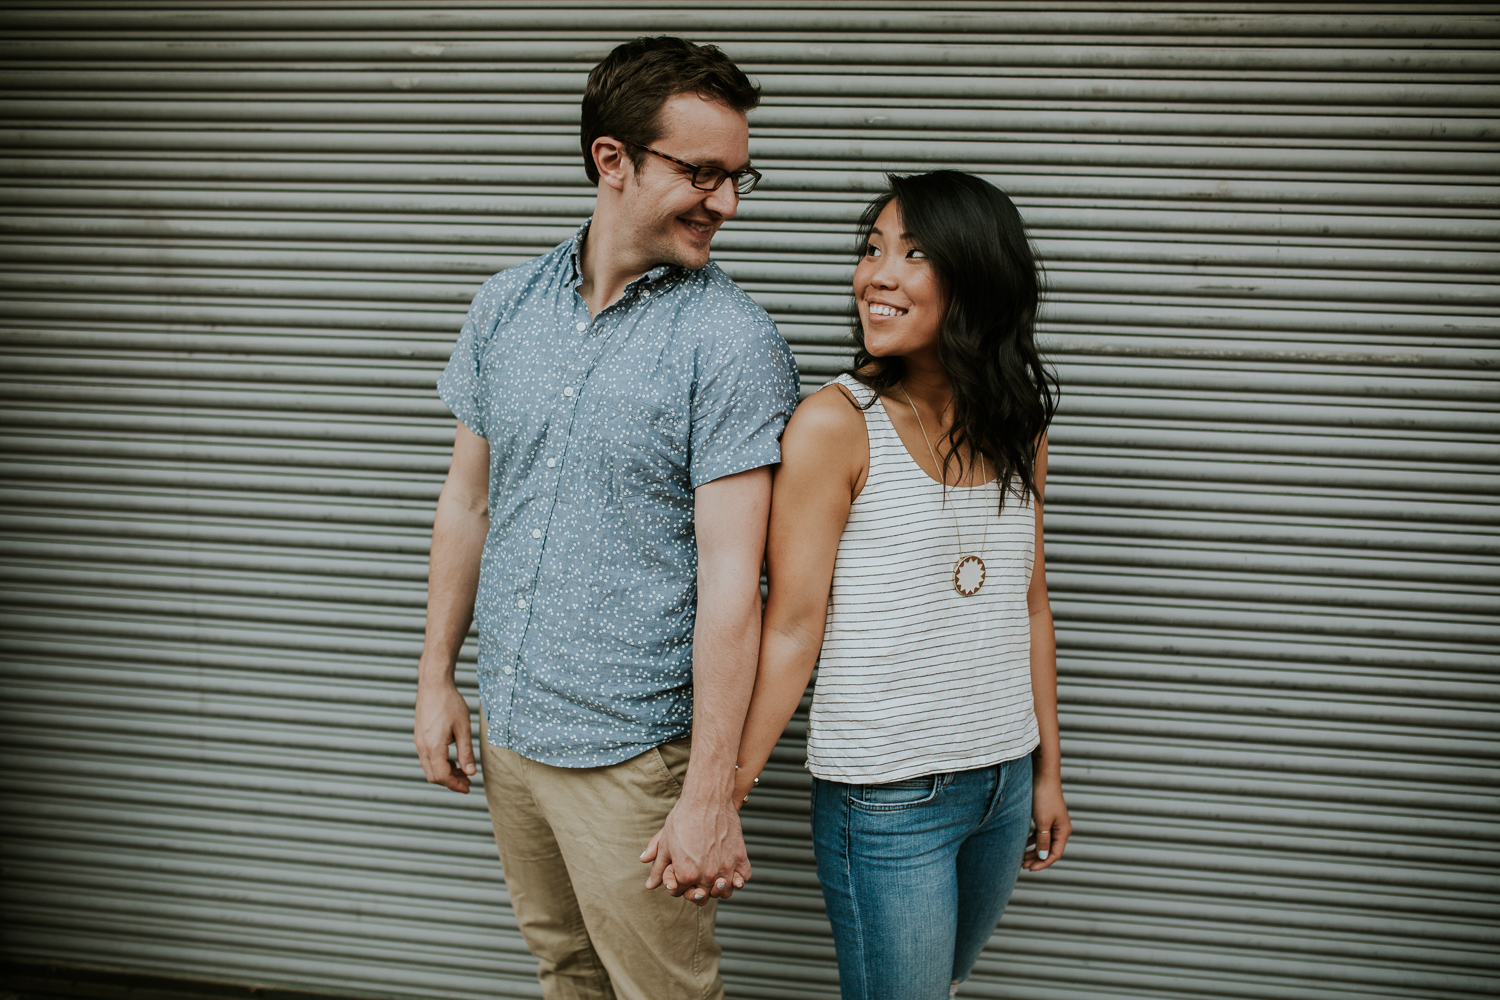 washington_dc_blagden_alley_engagement_photographer-28.jpg